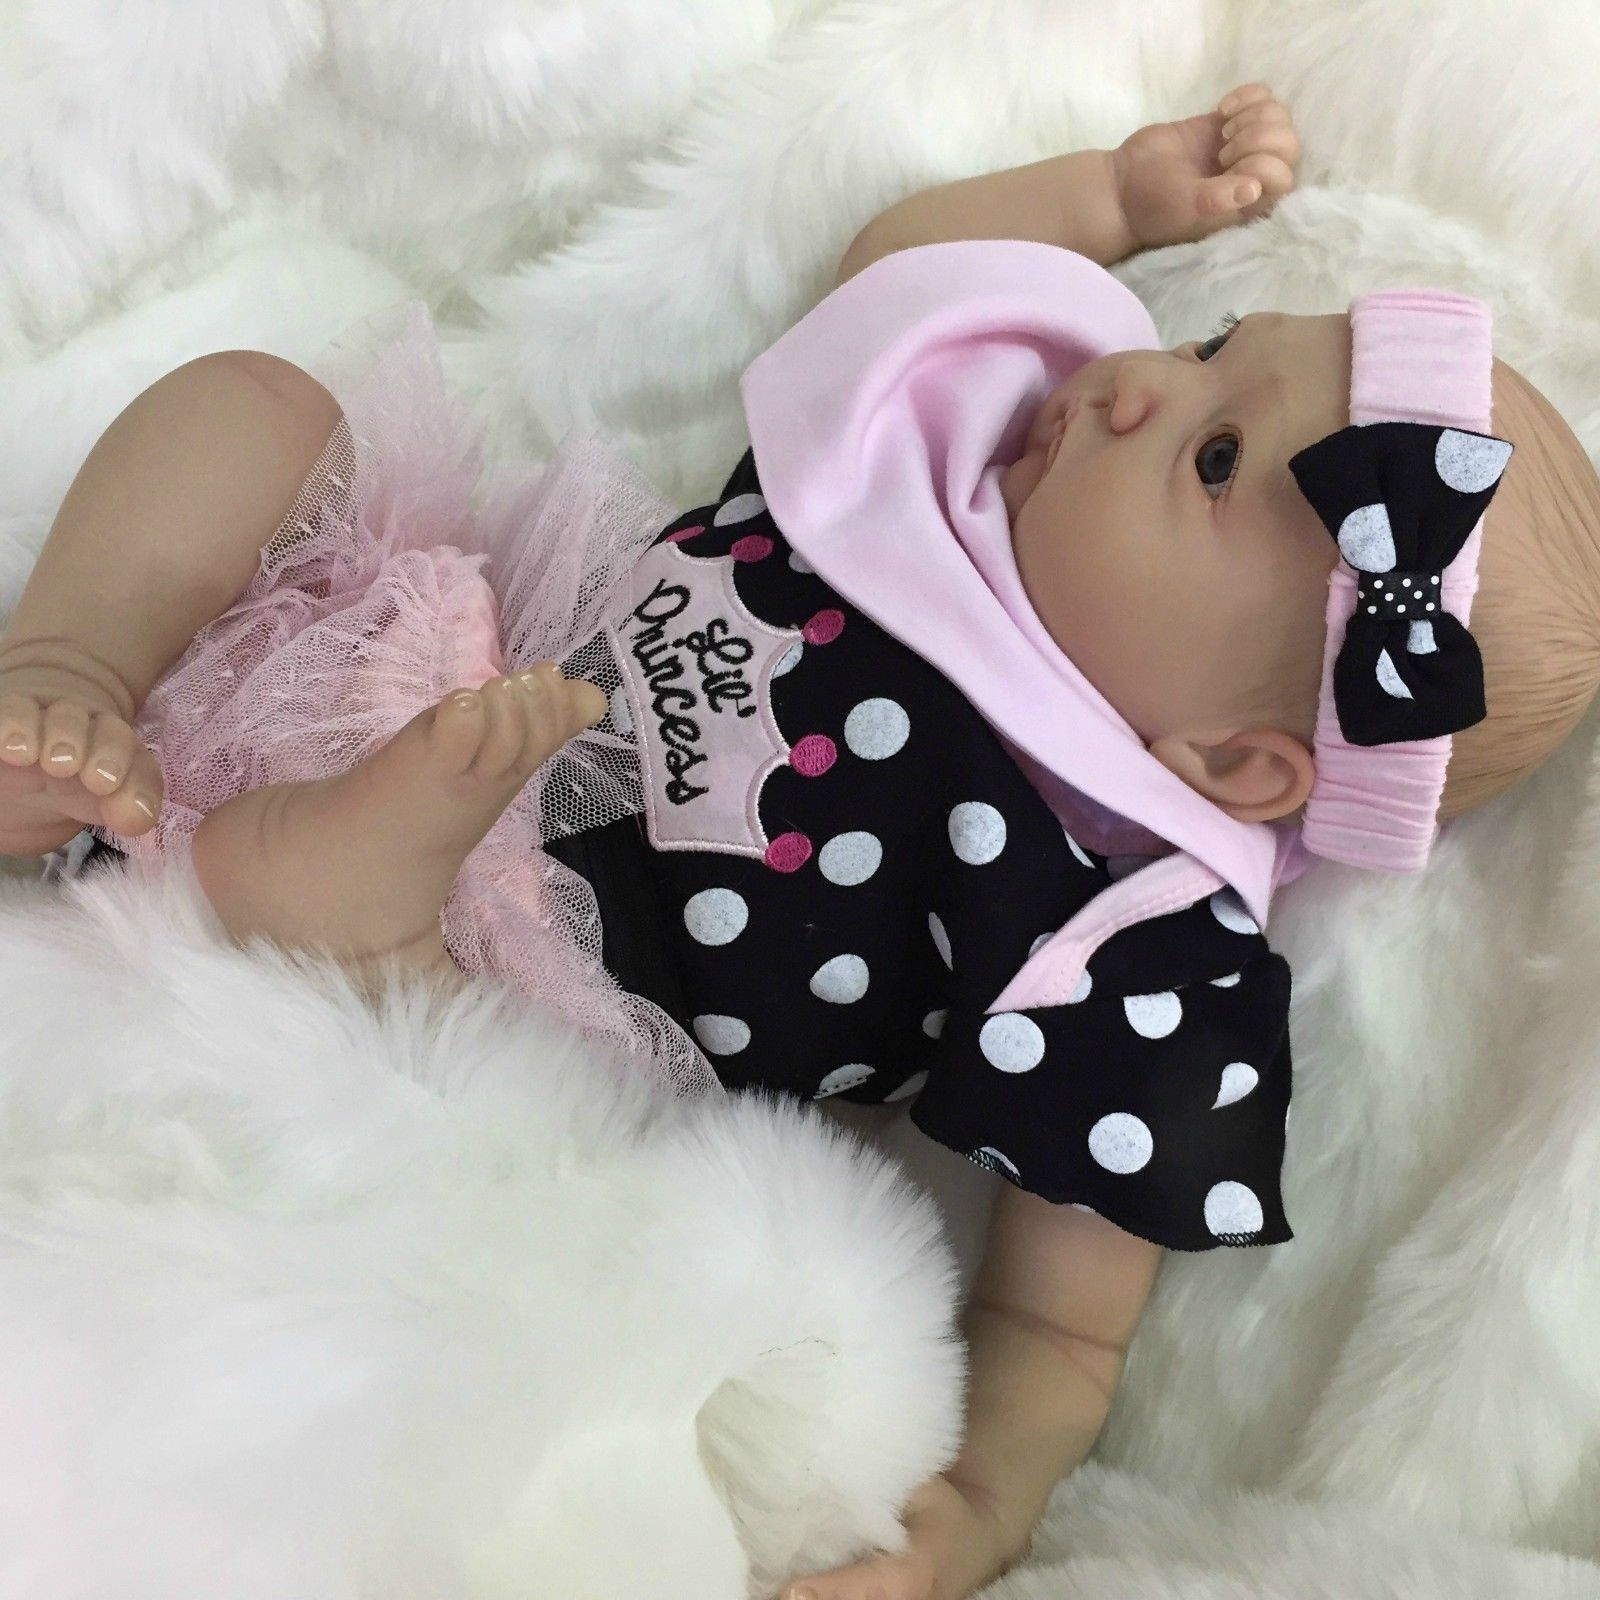 CHERISH DOLLS NEW REBORN REBORN REBORN DOLL MORGAN BABY FAKE BABIES REALISTIC 22  NEWBORN GIRL f9c122